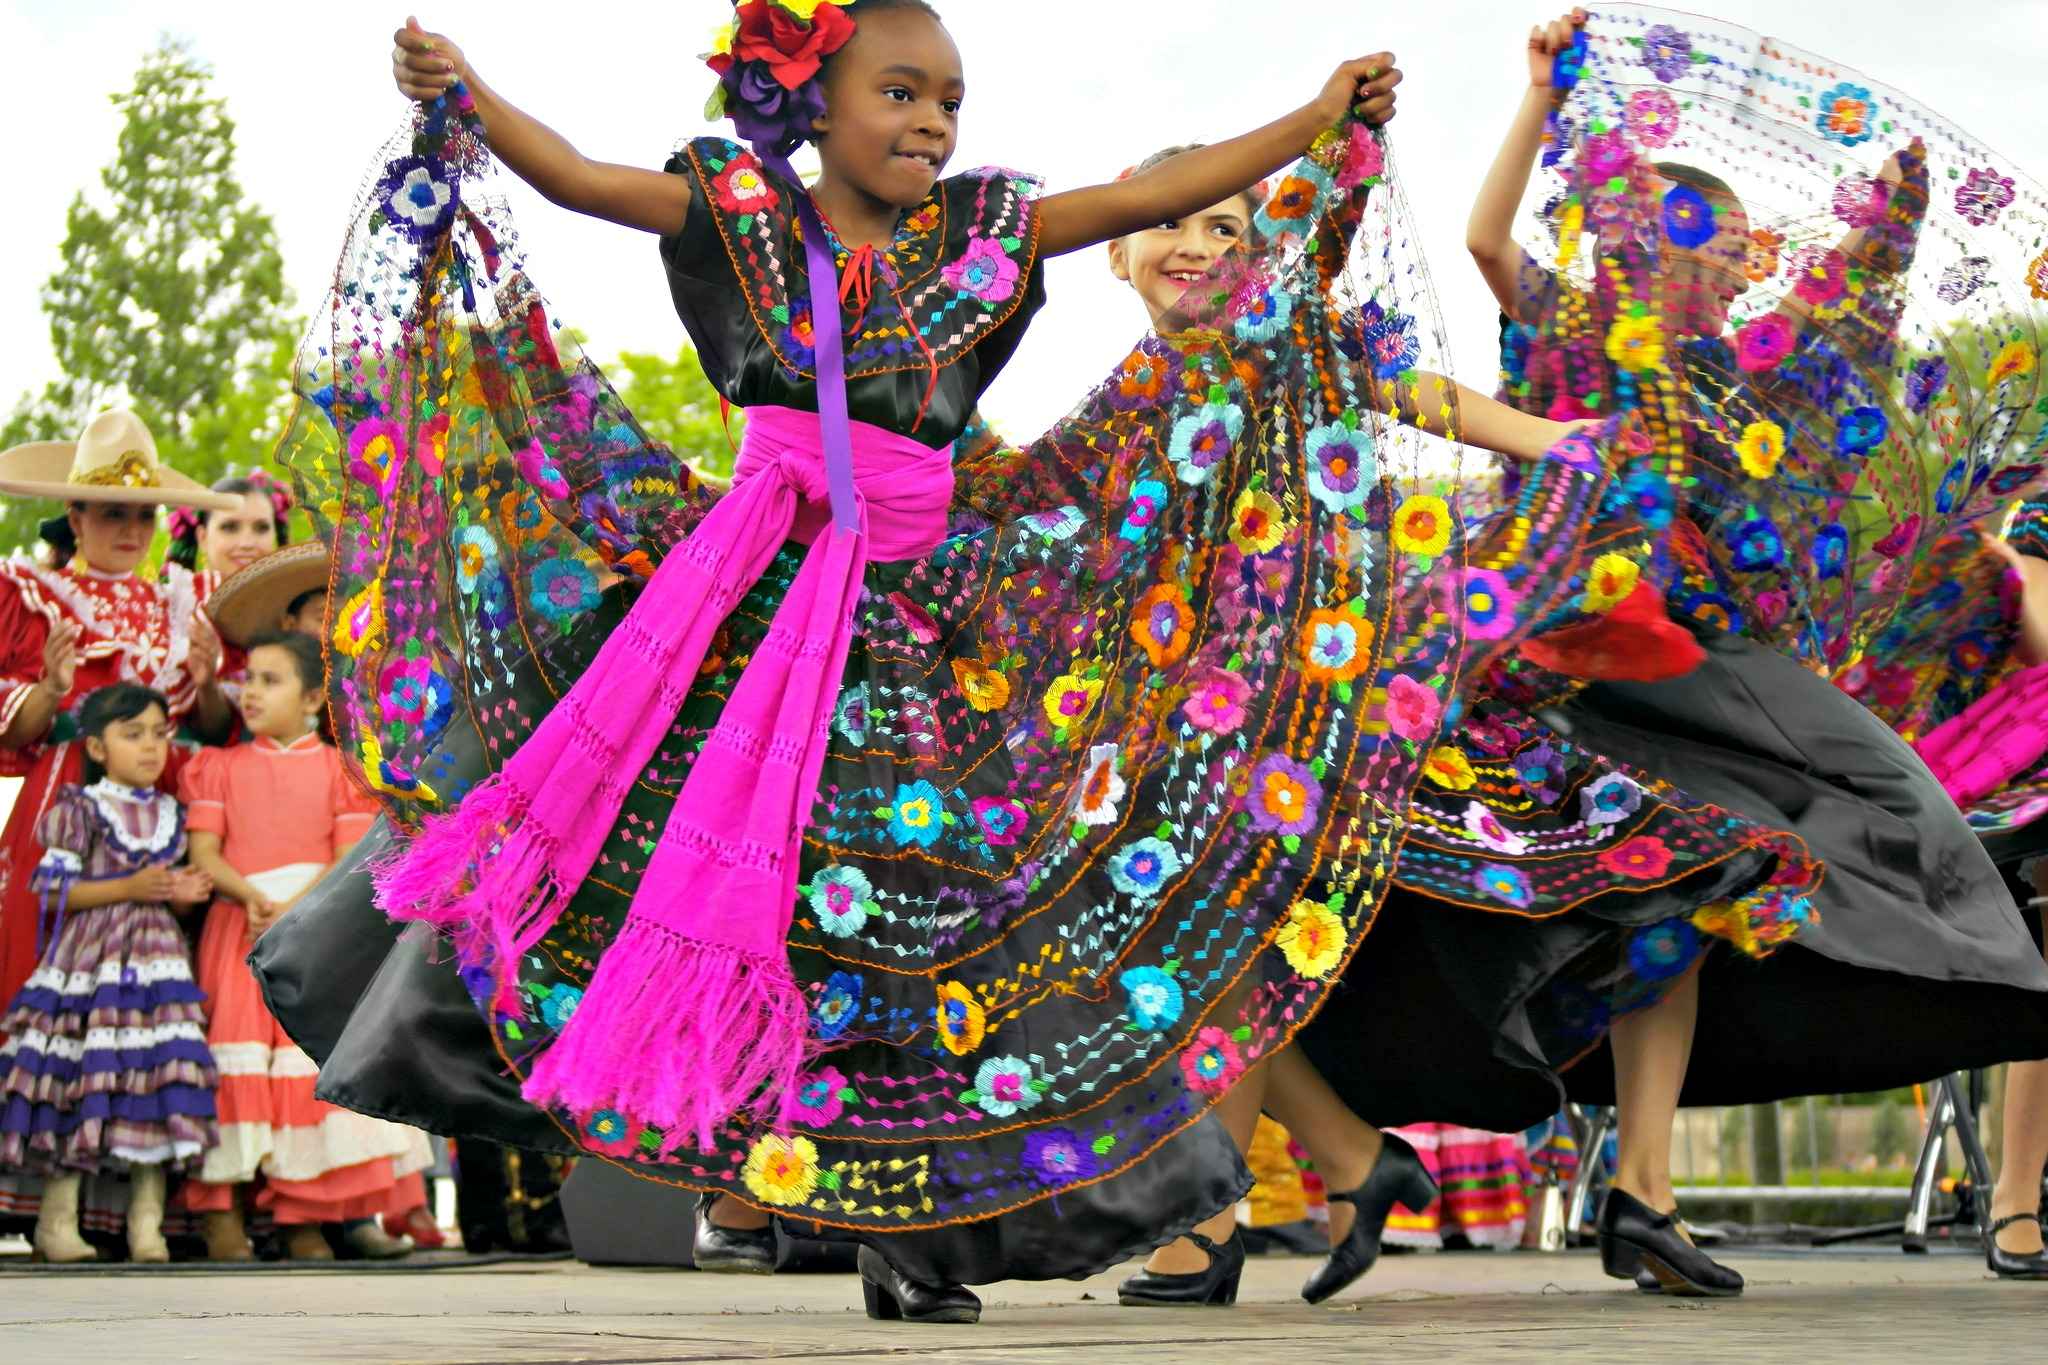 8 Free Cinco De Mayo Celebrations That Are Great For